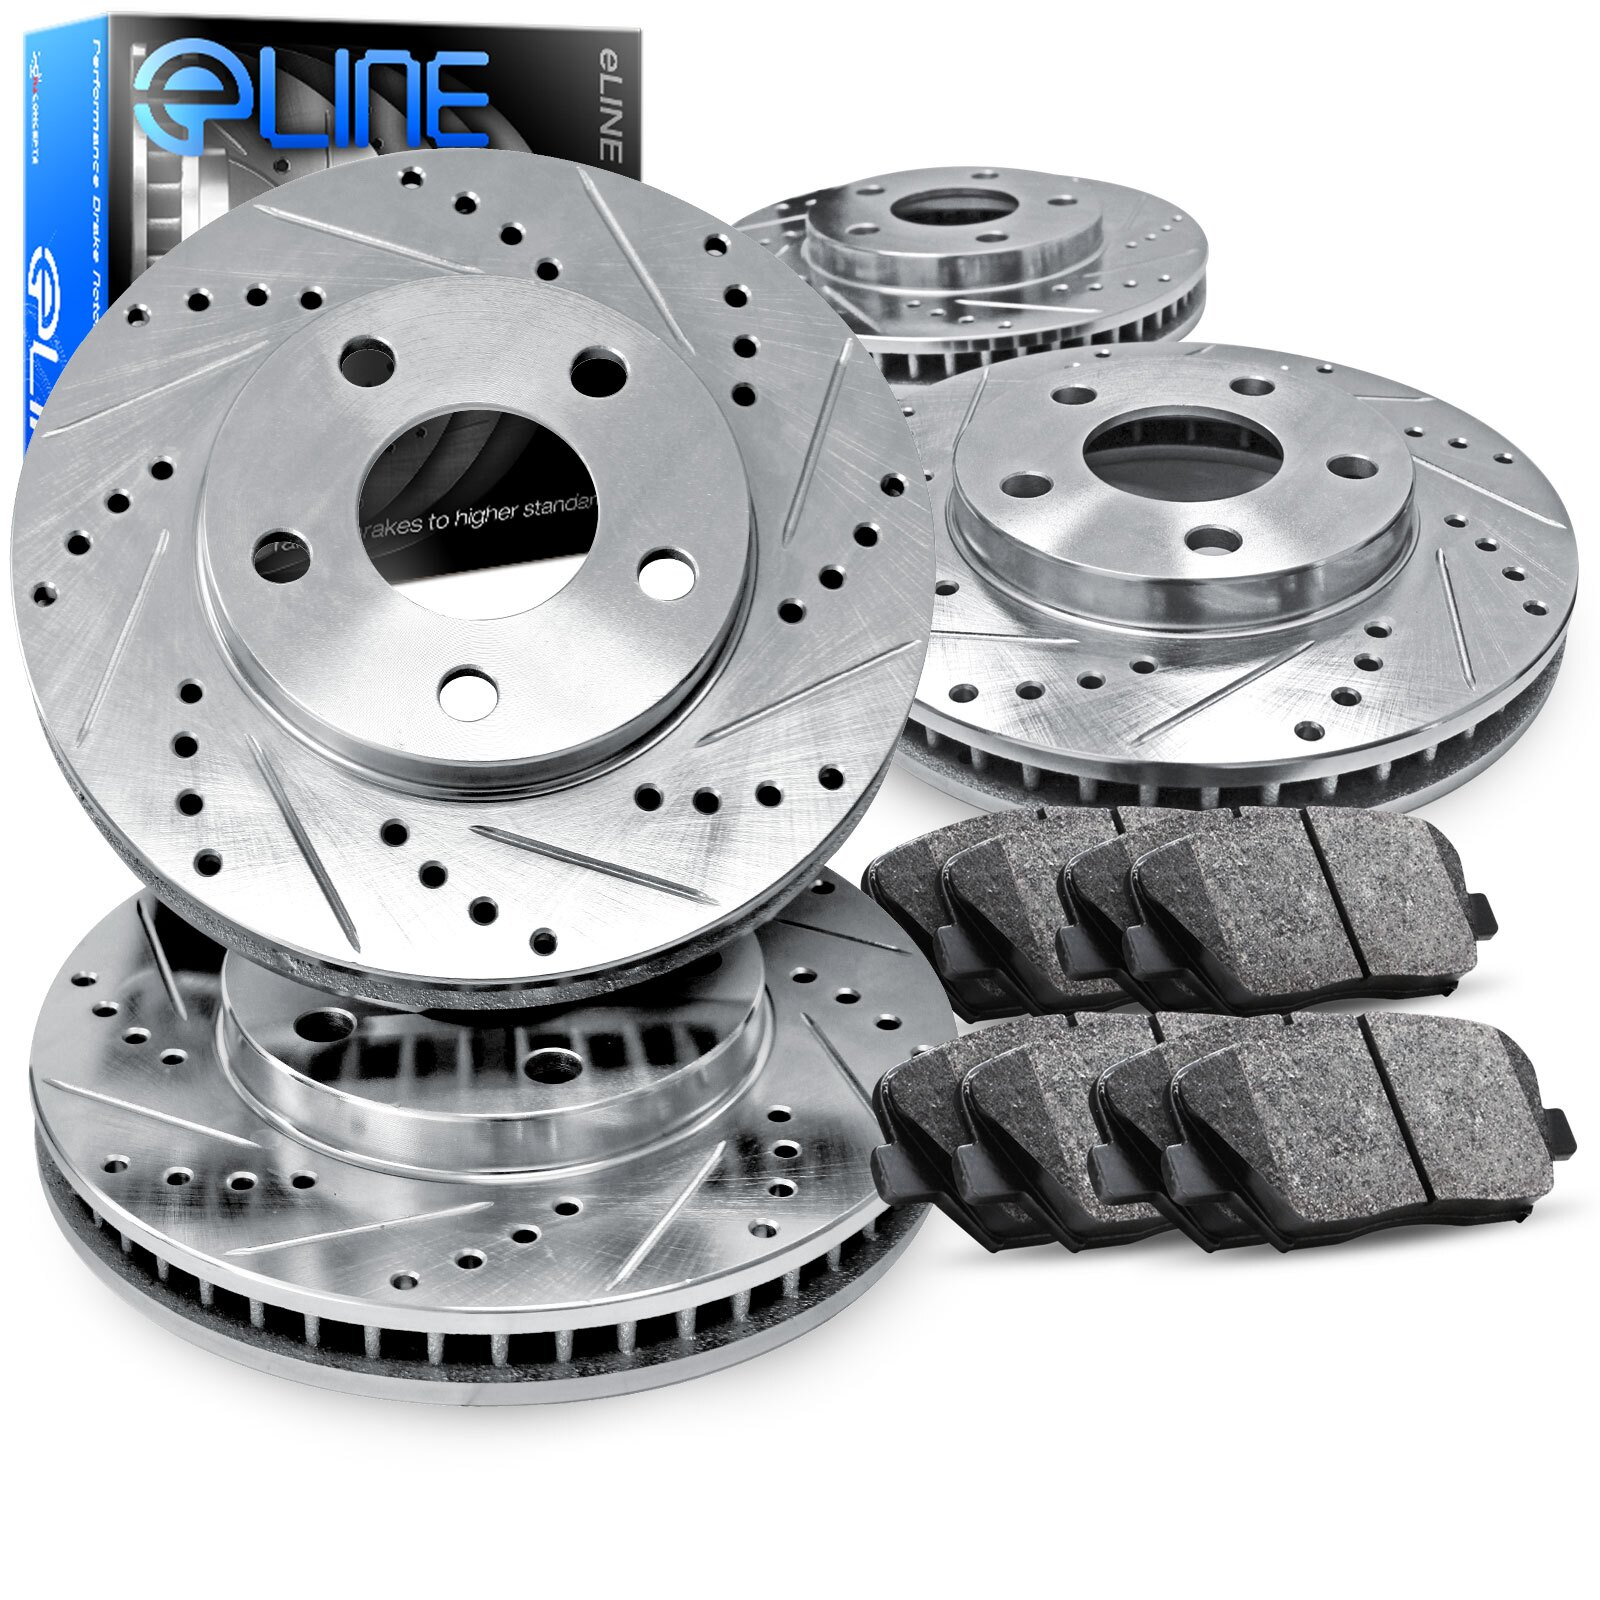 Front Cross-Drilled Slotted Brake Rotors Disc and Ceramic Pads Camaro,Firebird